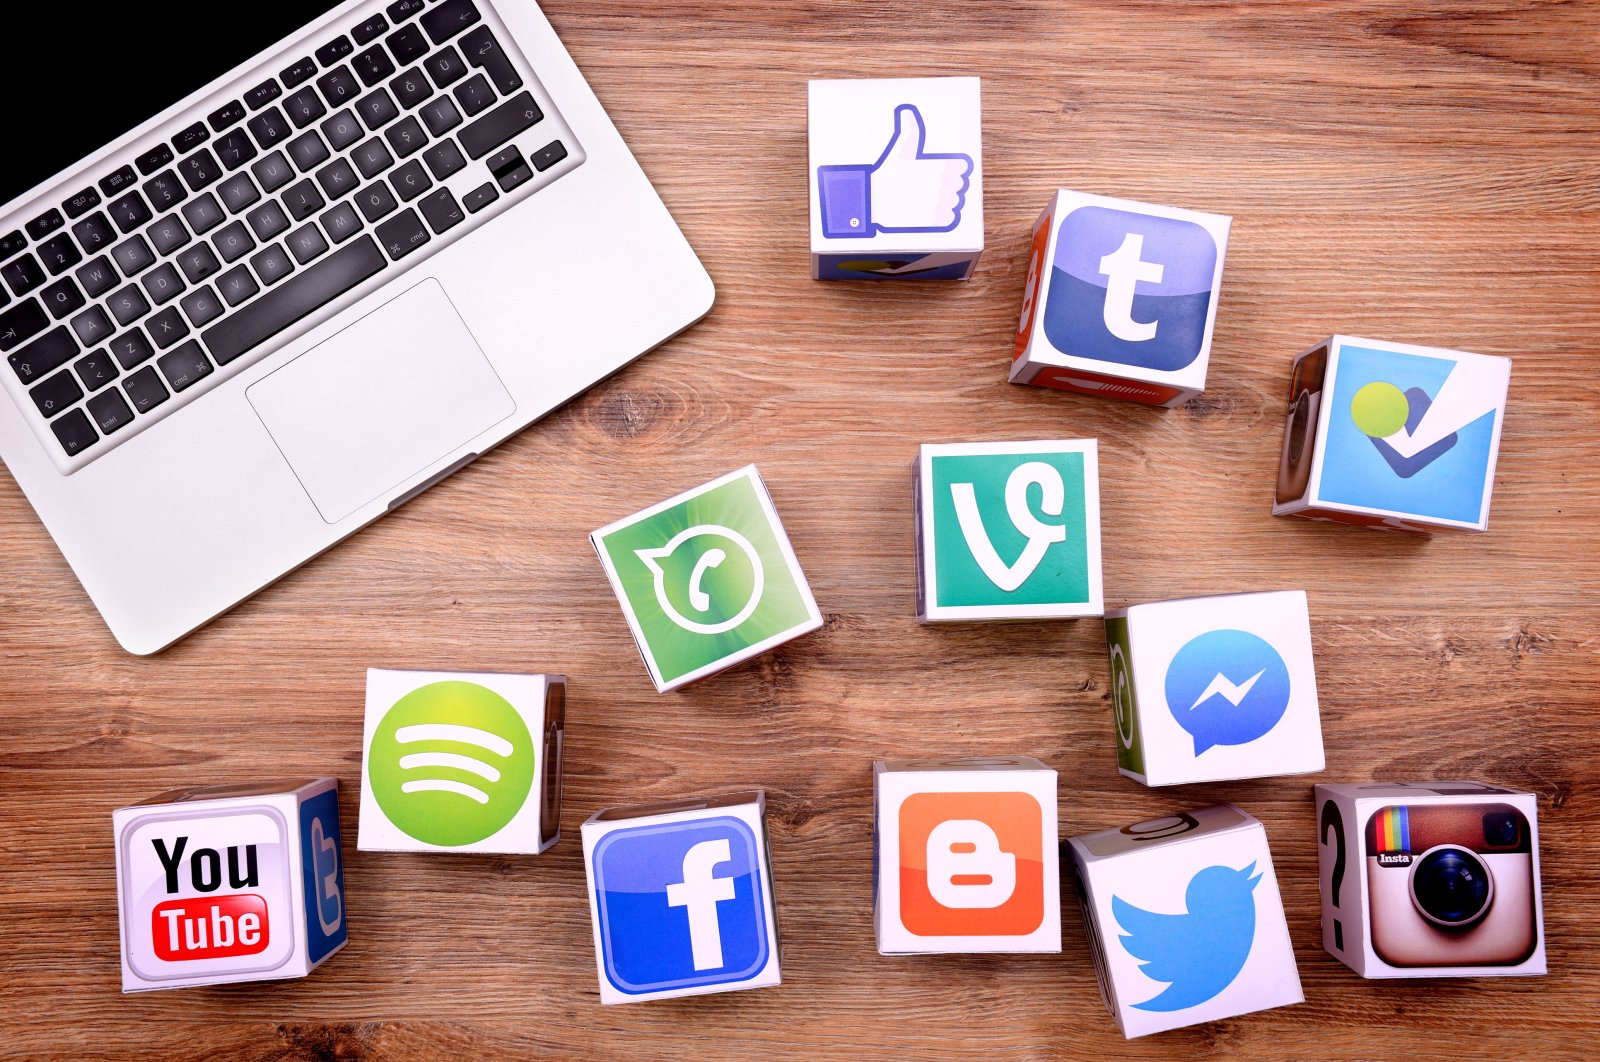 Paper cubes with popular social media services icons, including Facebook, Instagram, Youtube, Twitter, and a Macbook Pro laptop computer lay on a wooden desk. (Getty Images)